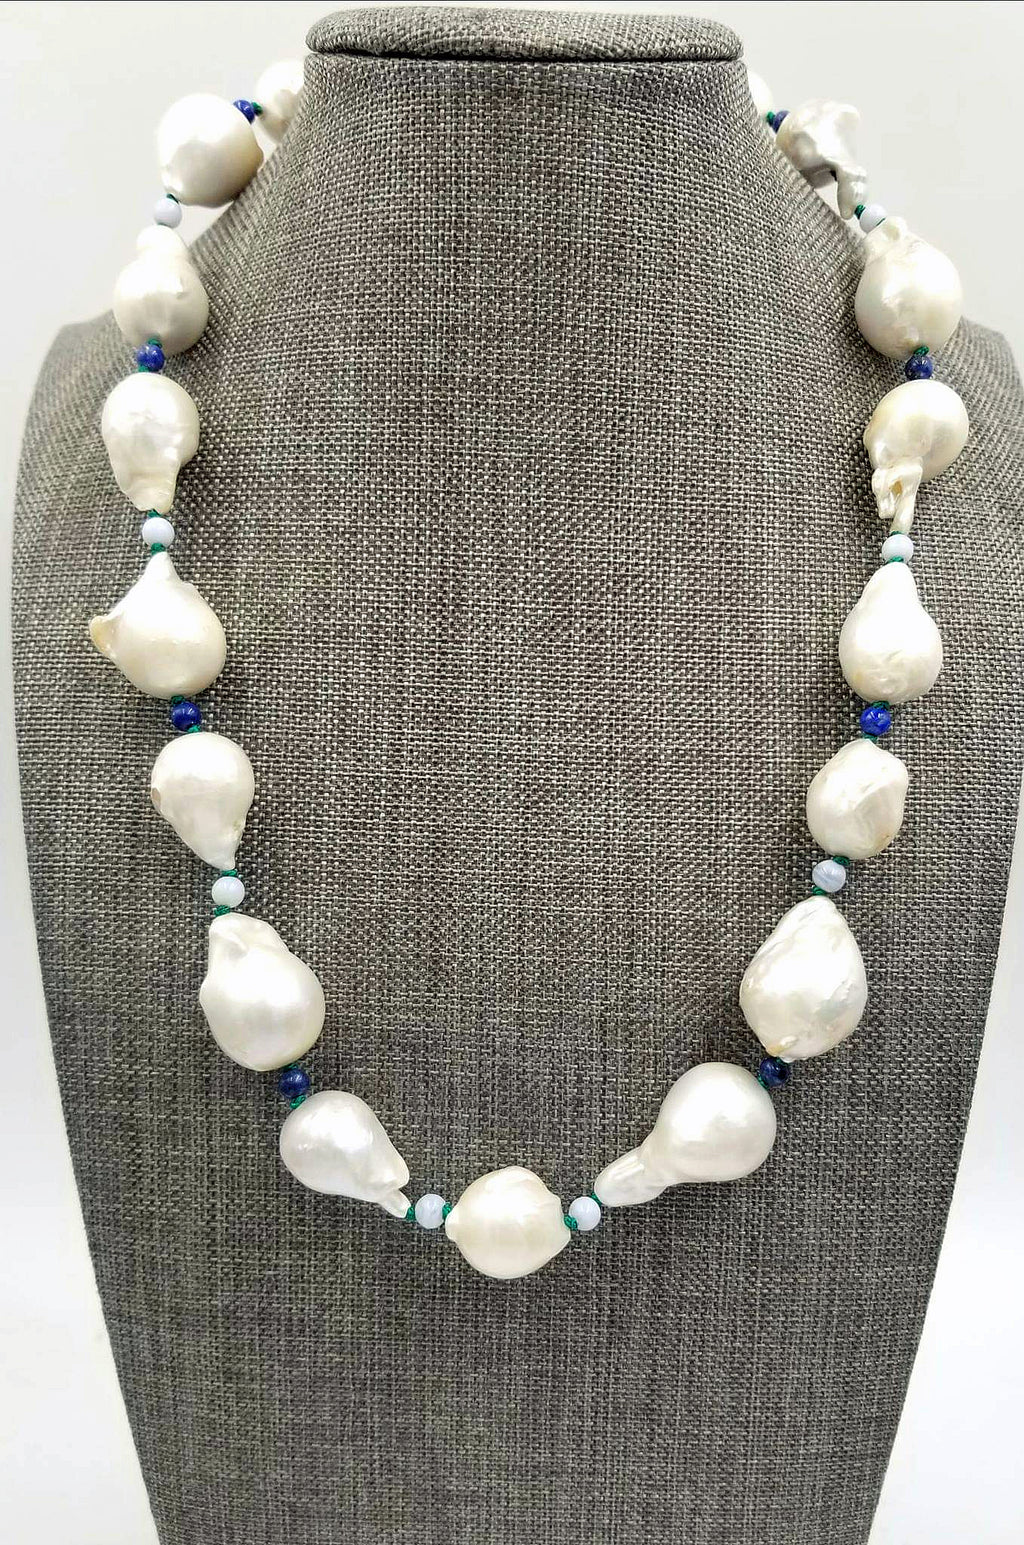 "Unique, Baroque pearls, lace agates, and lapis lazuli, sterling silver necklace on verde silk. 19"" Princess length."